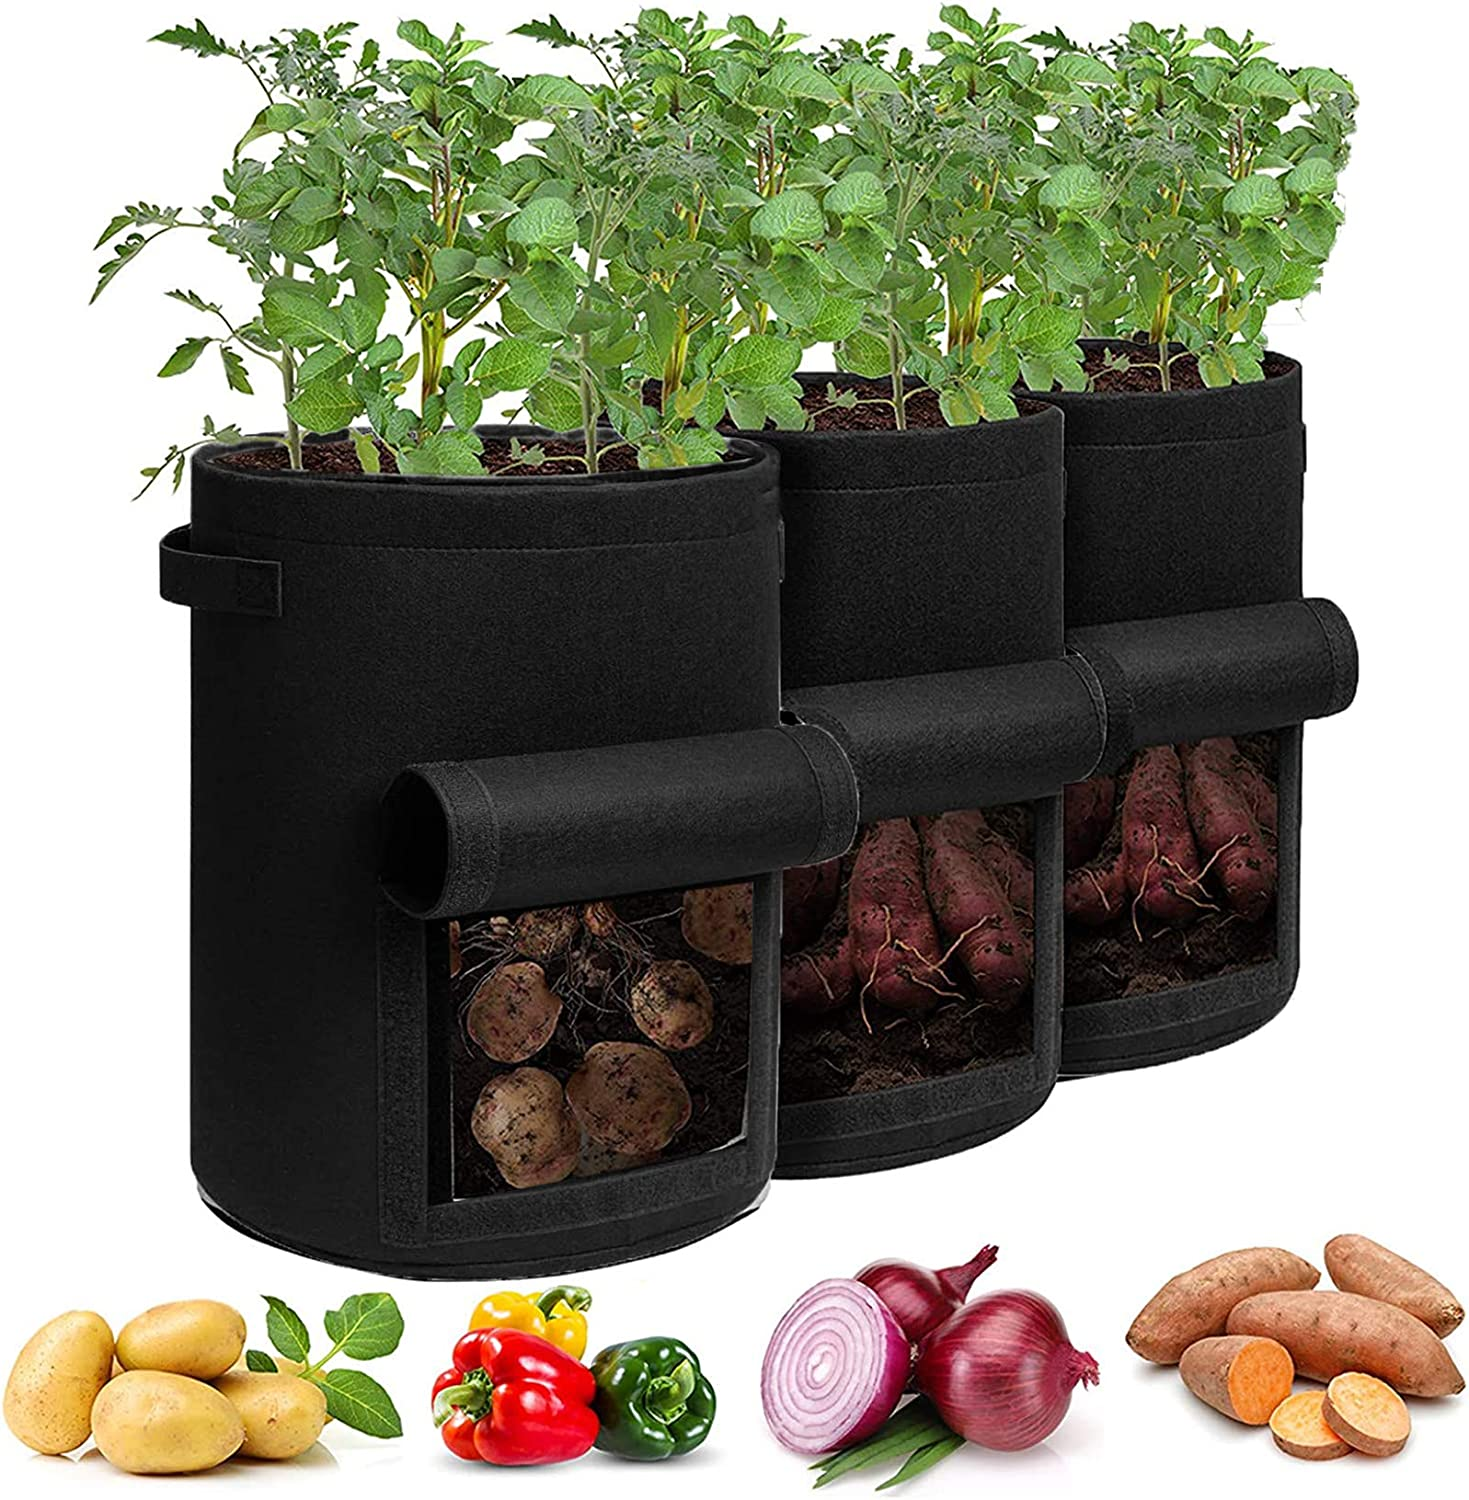 MFOX 3 Pack 10 Gallon Potato Grow Bags,Garden Planting Bags,Non-Woven Aeration Fabric Pot Growing Bags,Vegetables Planter Bags with Handle and Access Flap